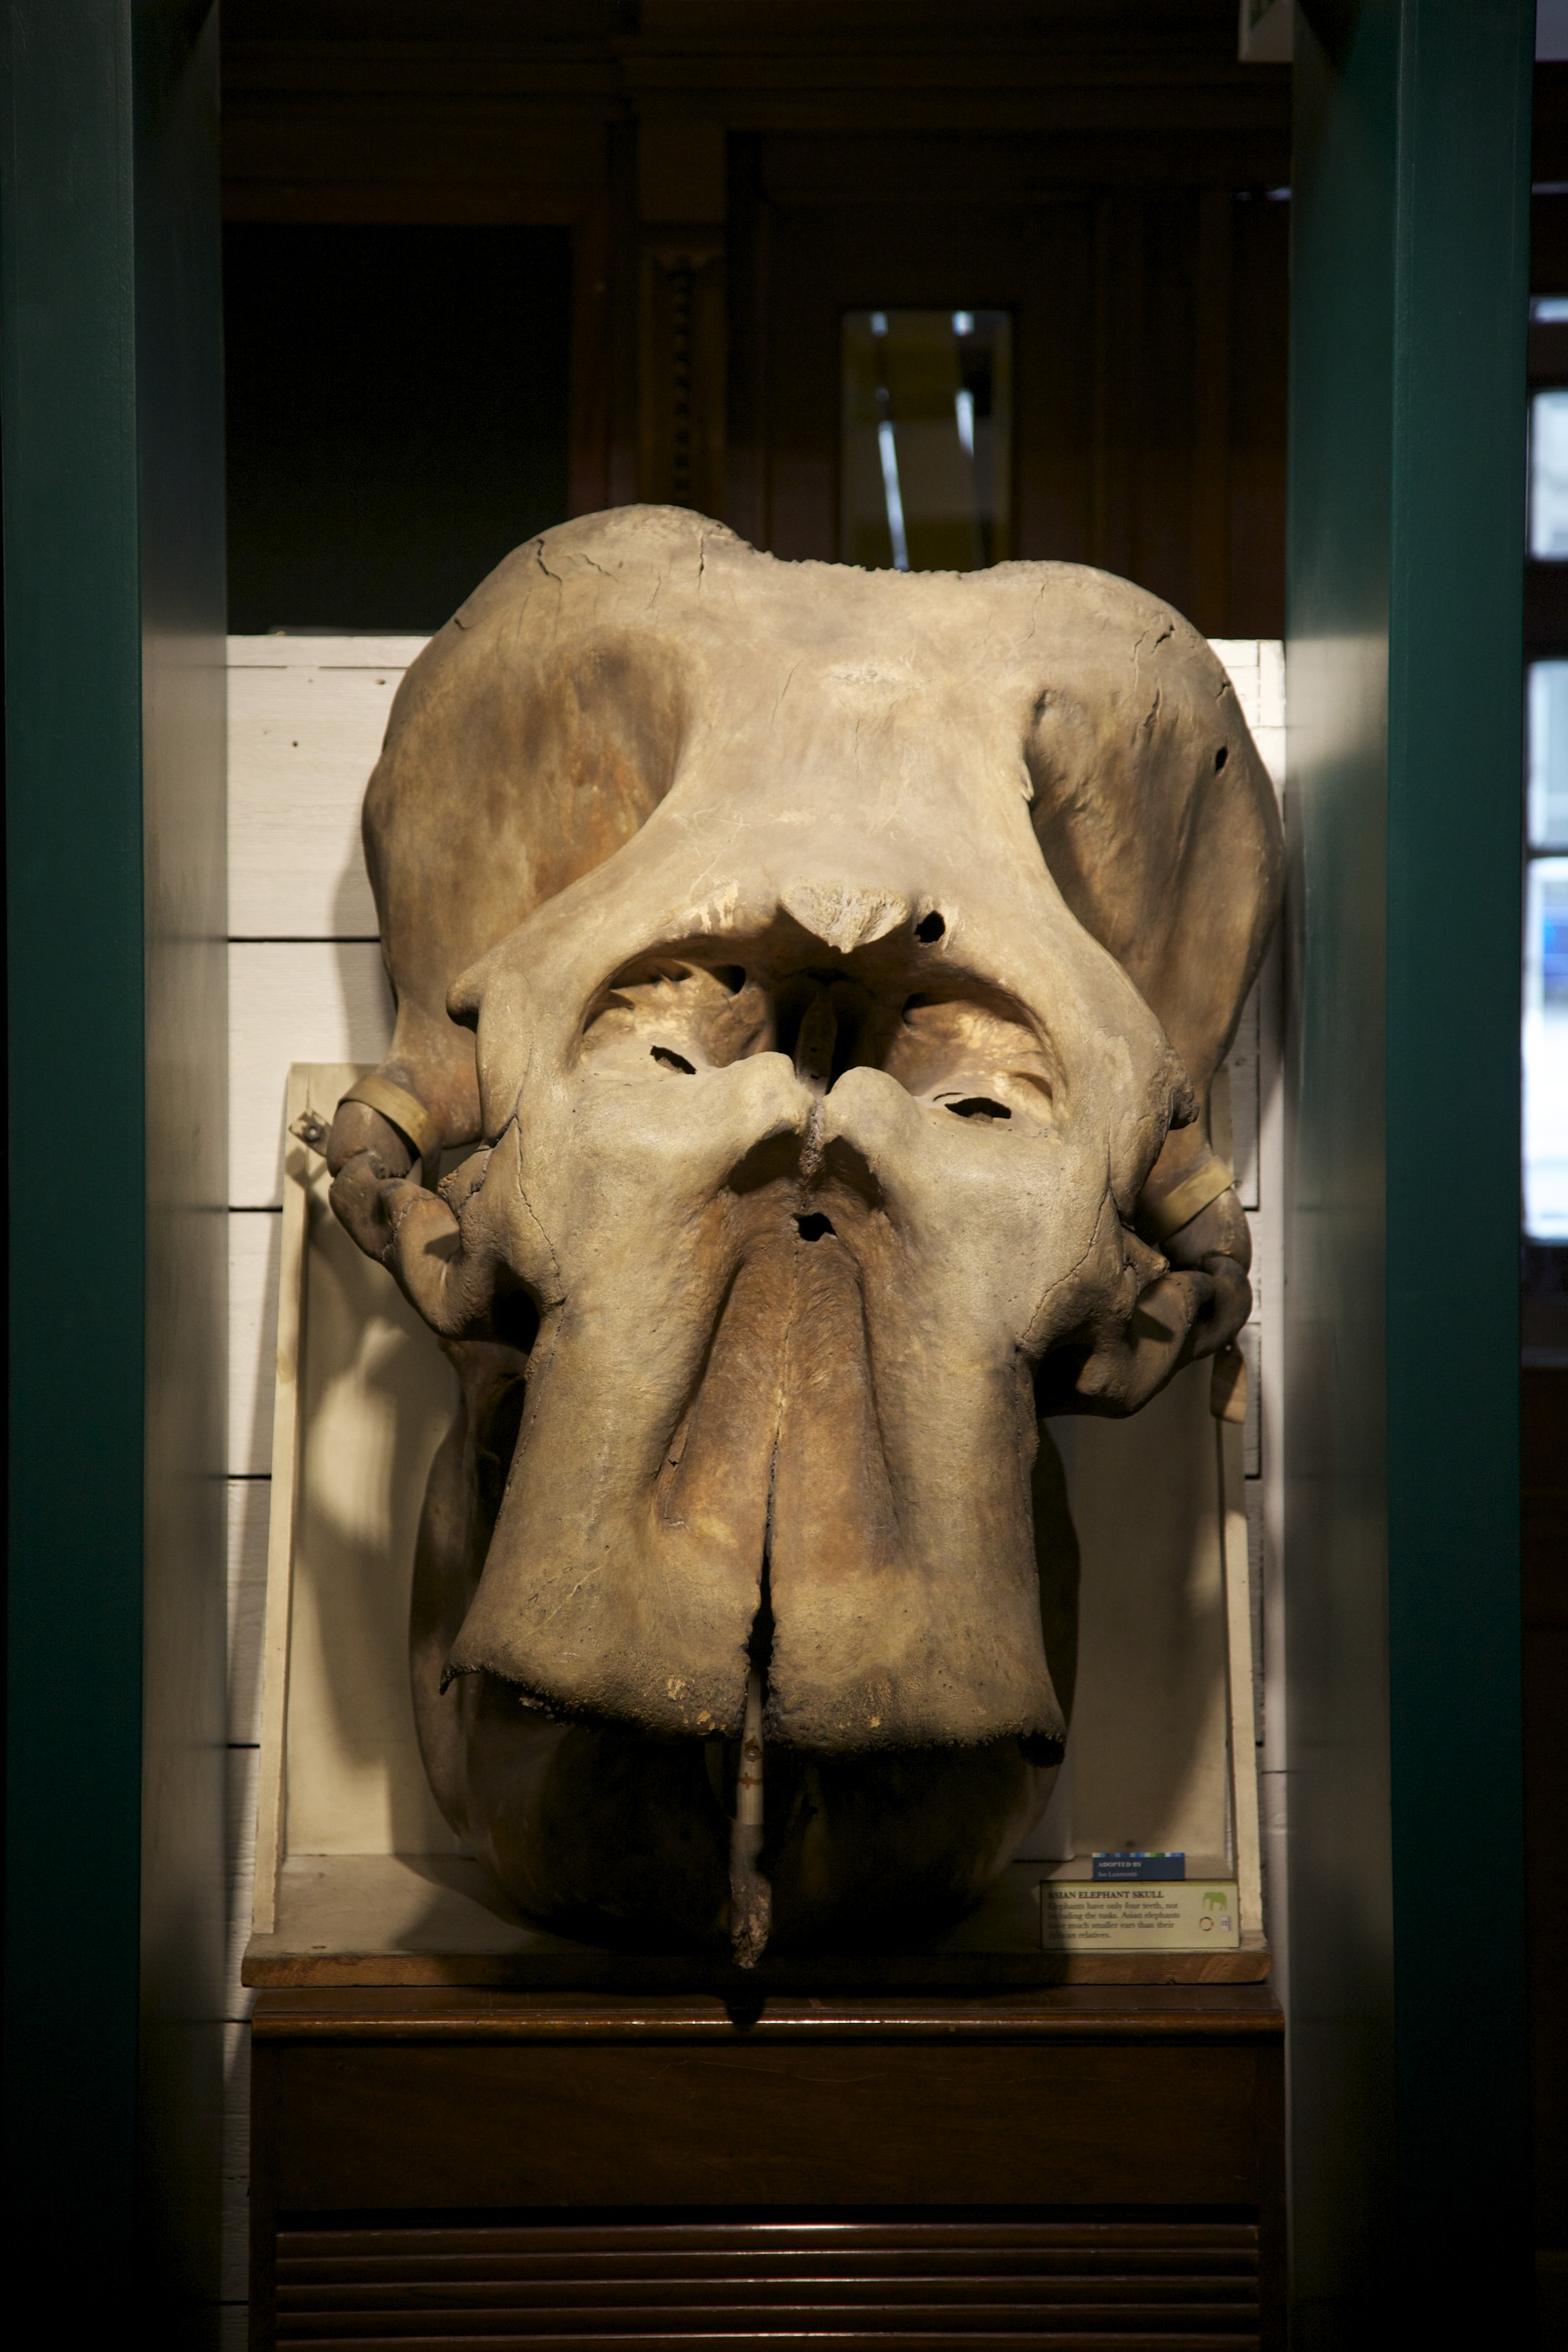 Elephant skull at UCL's Grant Museum of Zoology. I herd somewhere that Elephant skulls were thought to have sparked/encouraged the cyclops myth. Possibly untrue, but you can see how they might.